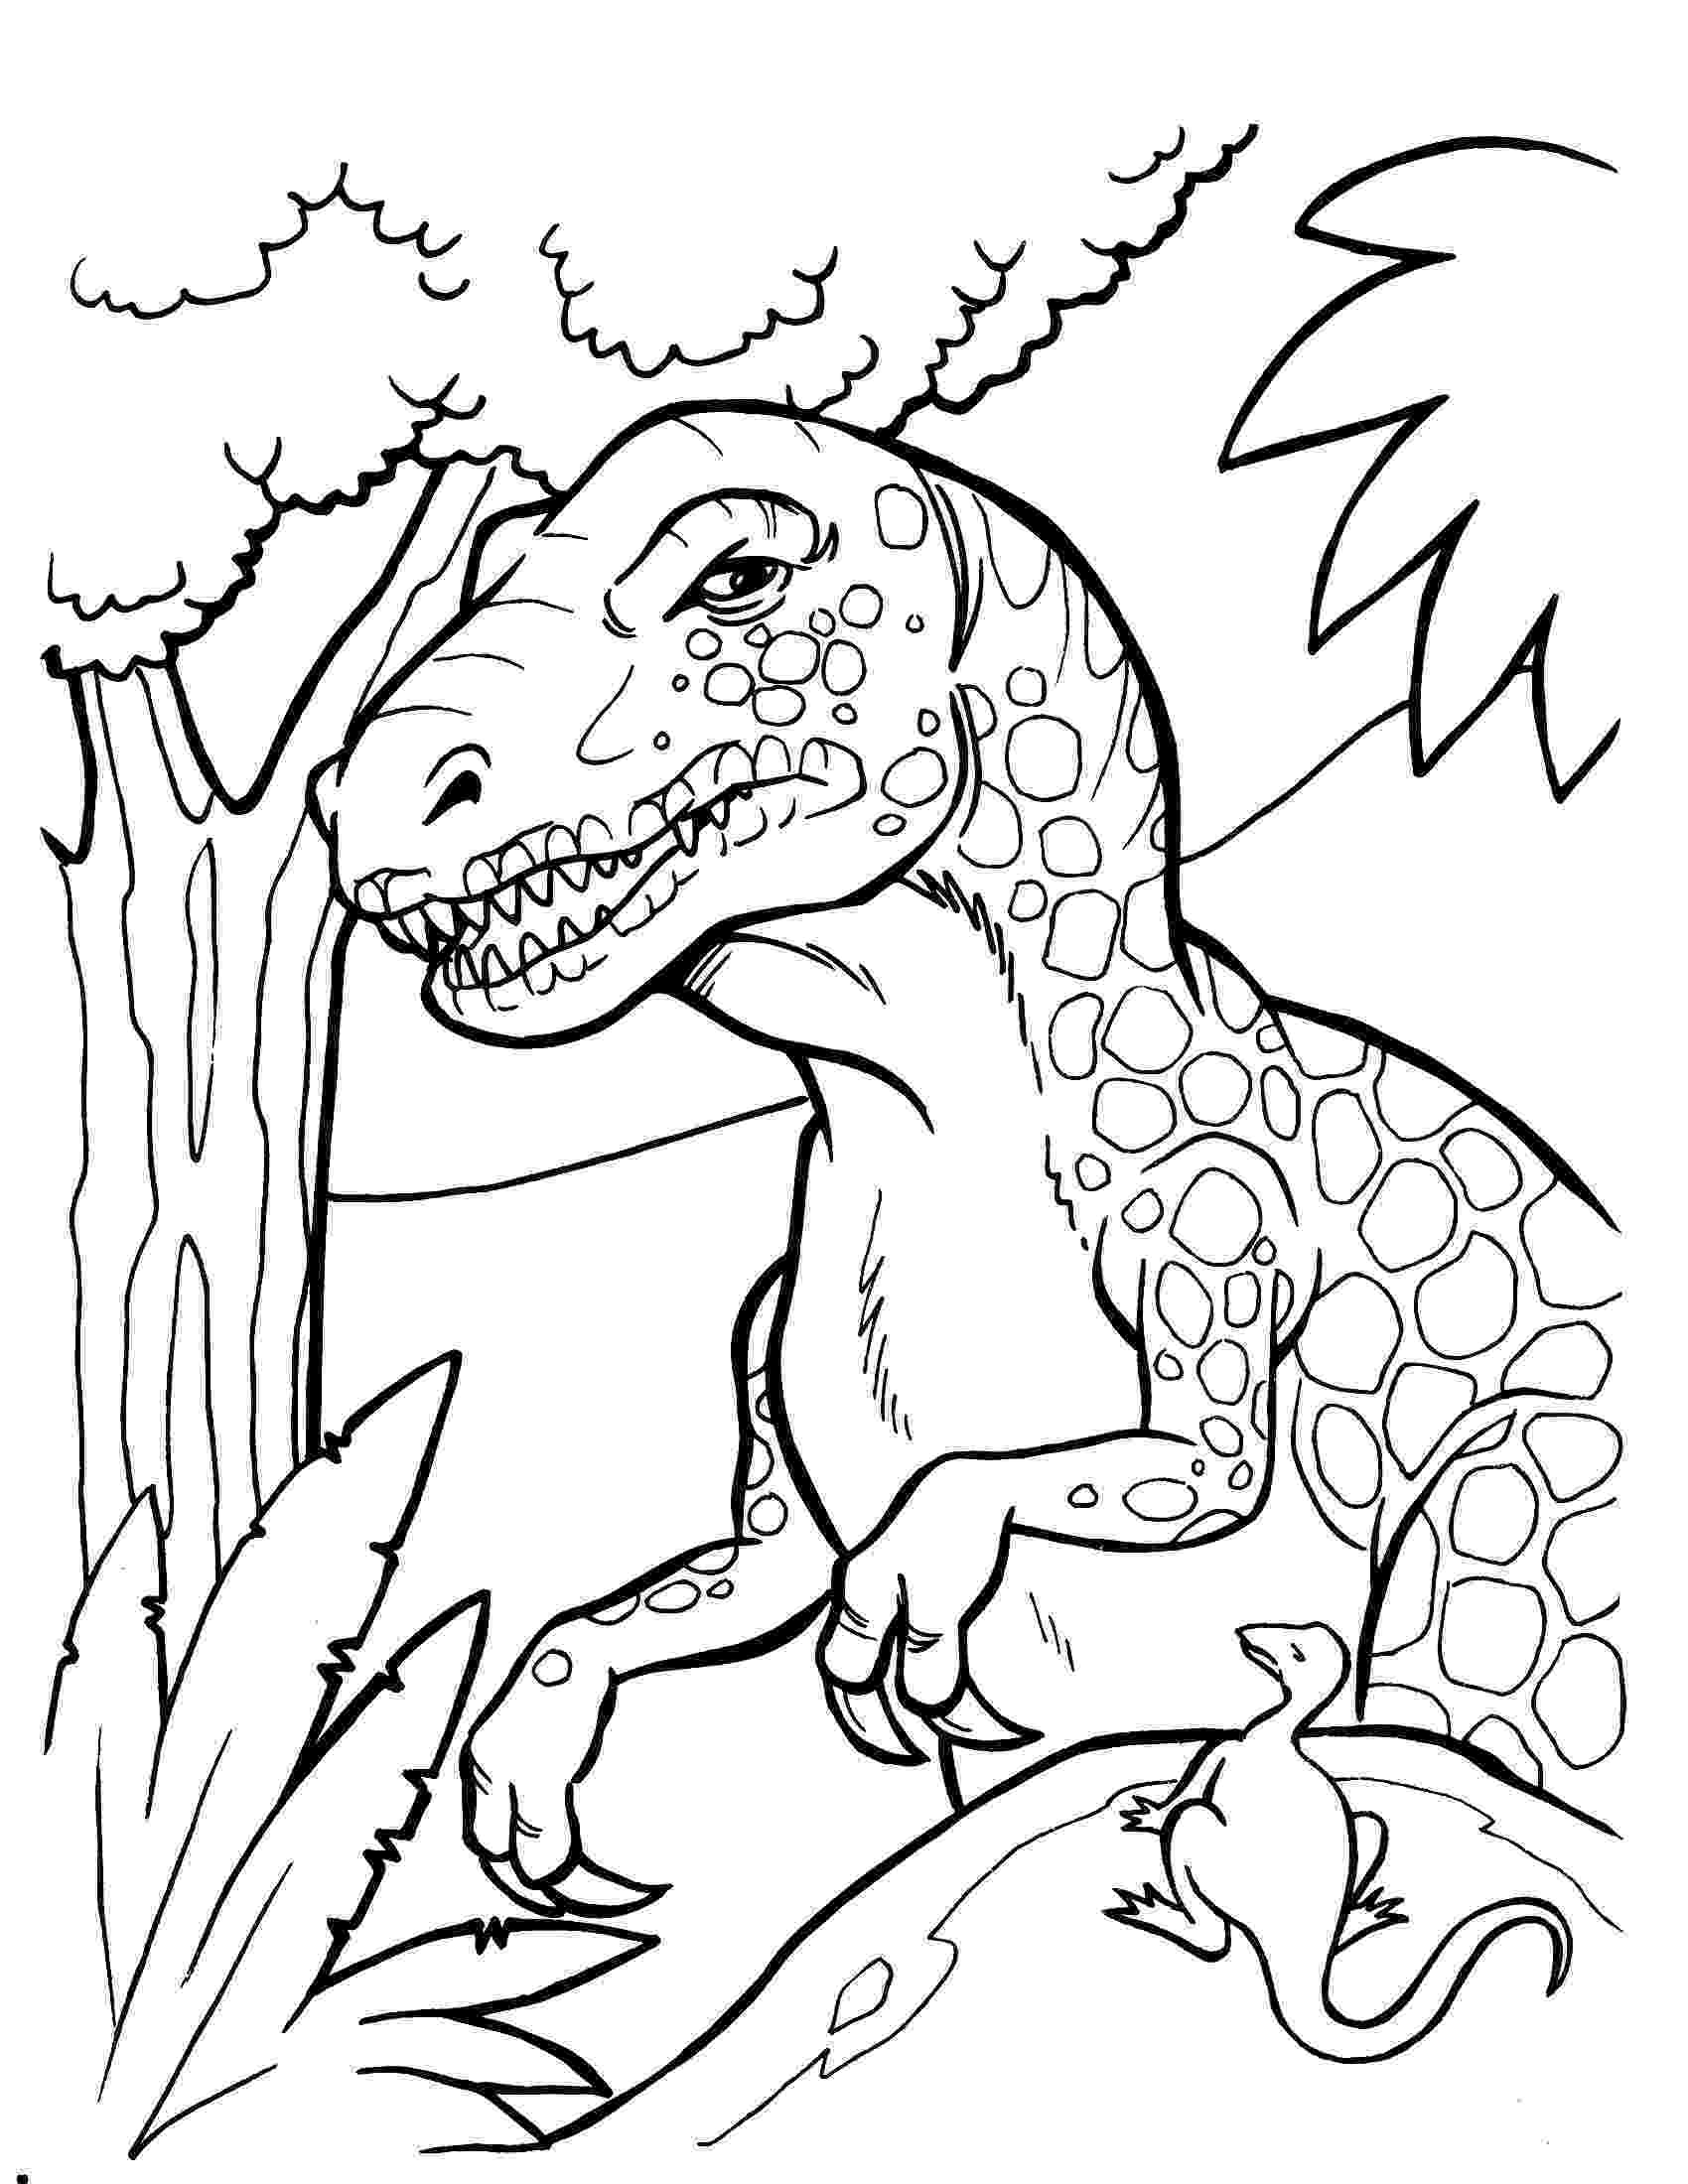 free printable dinosaur pictures dinosaur coloring pages to download and print for free free pictures printable dinosaur